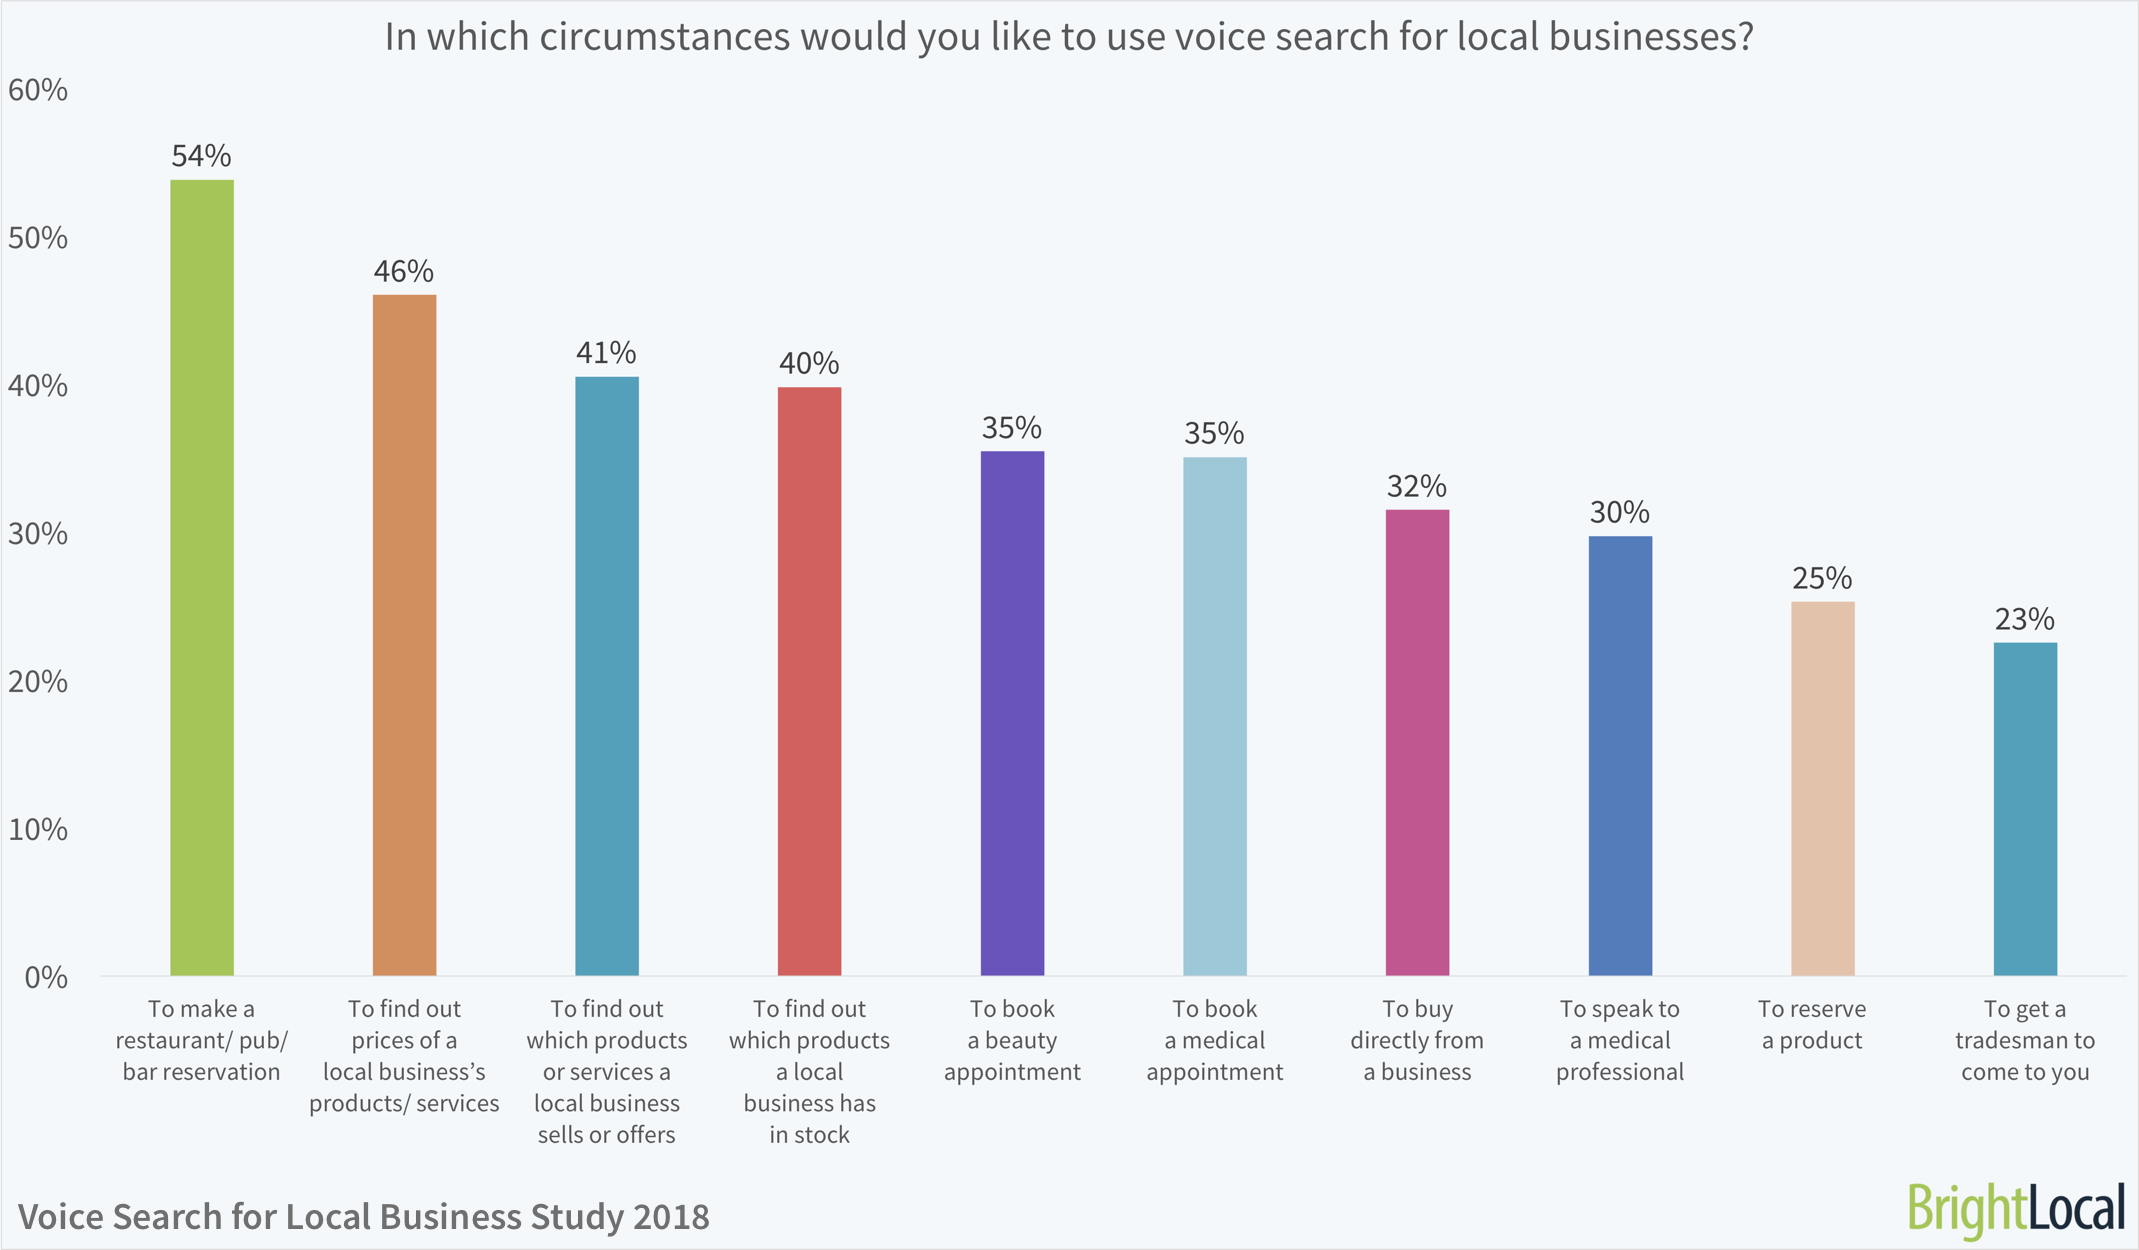 In which circumstances would you like to use voice search for local businesses? | BrightLocal Voice Search for Local Business Study